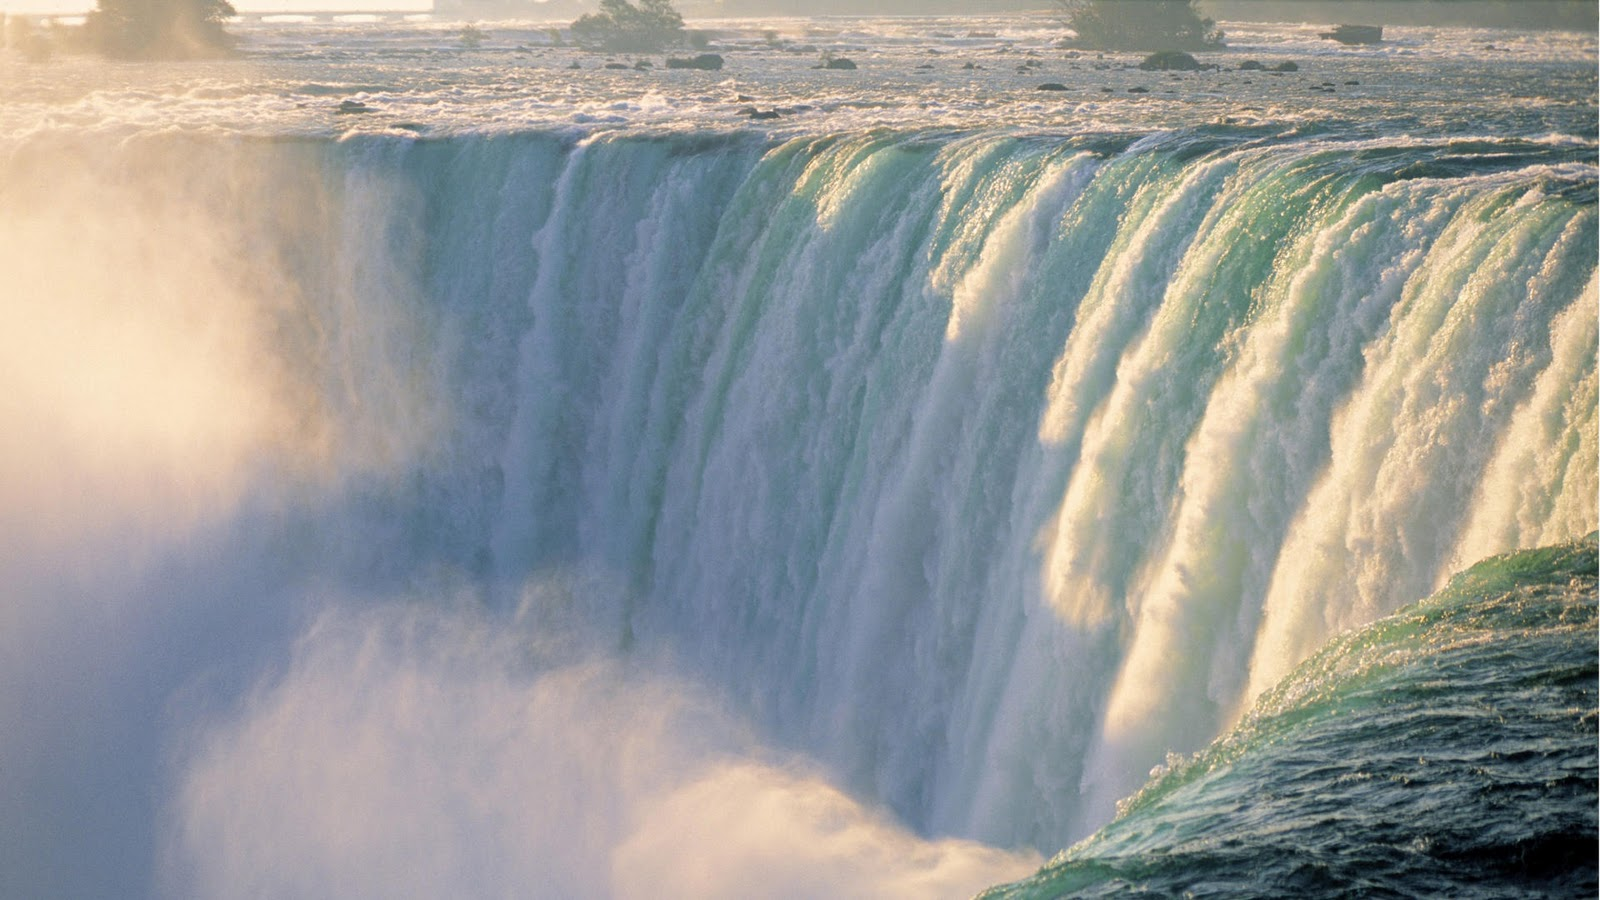 Niagara Falls Are Composed Of Two Major Sections Separated By Goat Island The Horseshoe On Canadian Side And American